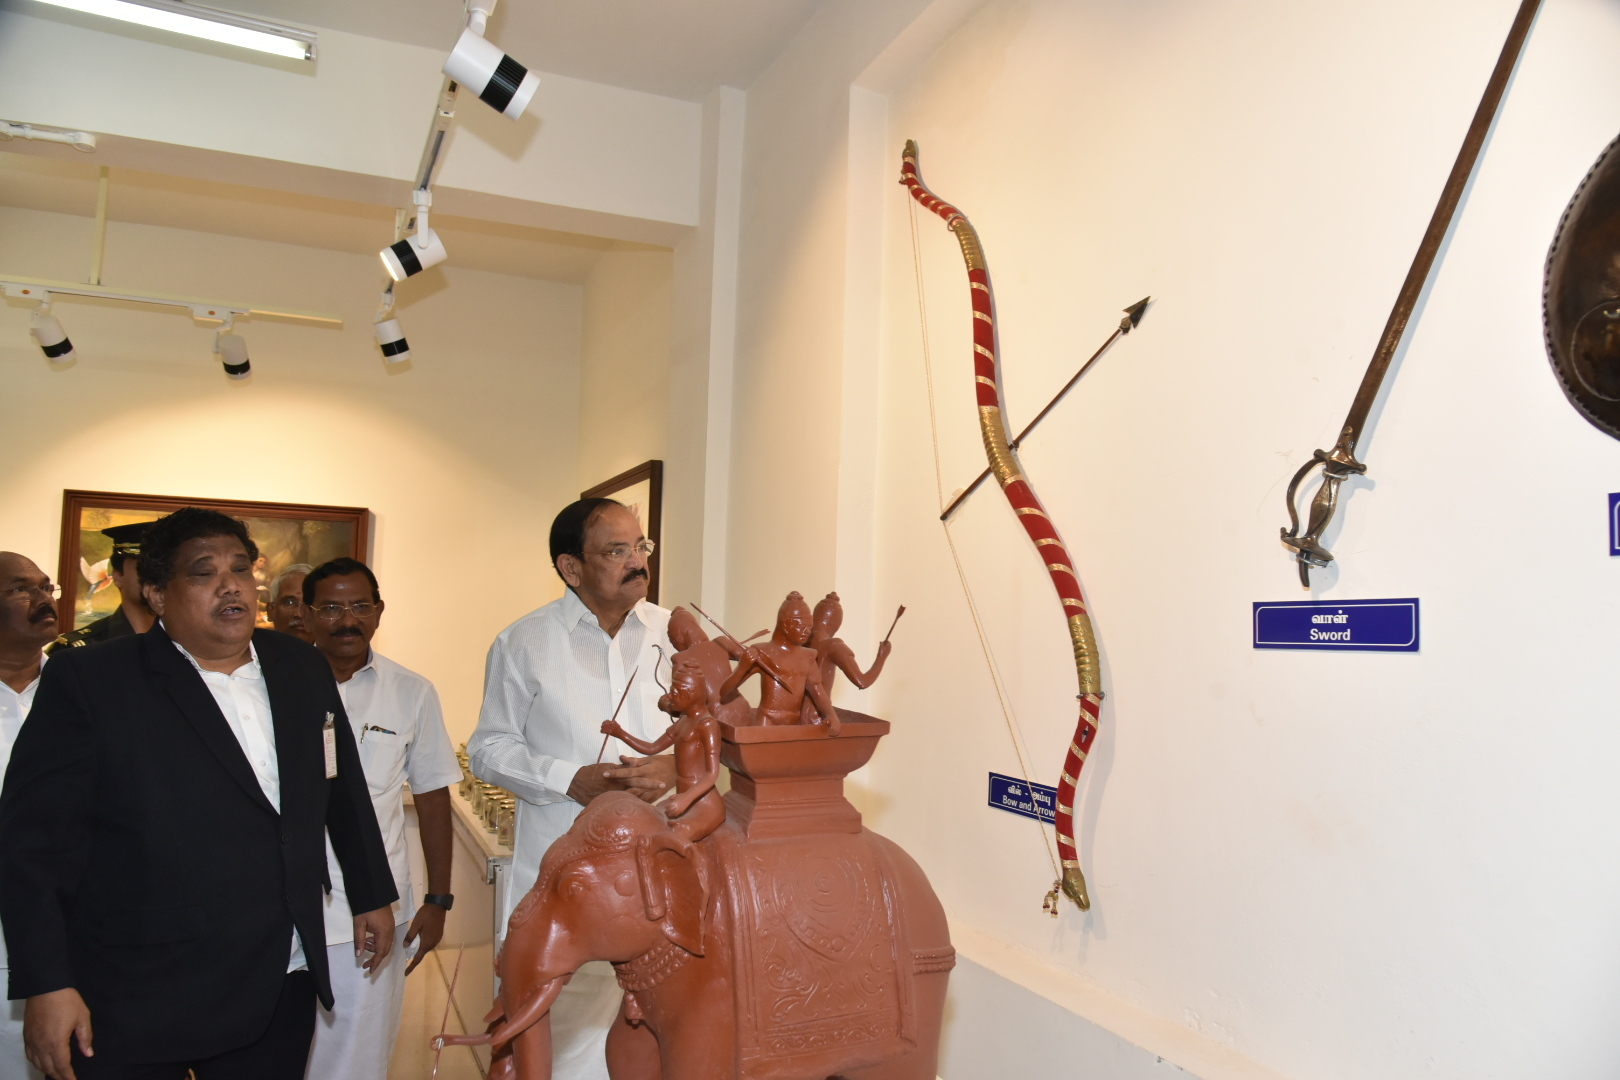 The Vice President, Shri M. Venkaiah Naidu visiting the International Institute of Tamil Studies, in Chennai, on 19 January, 2020.